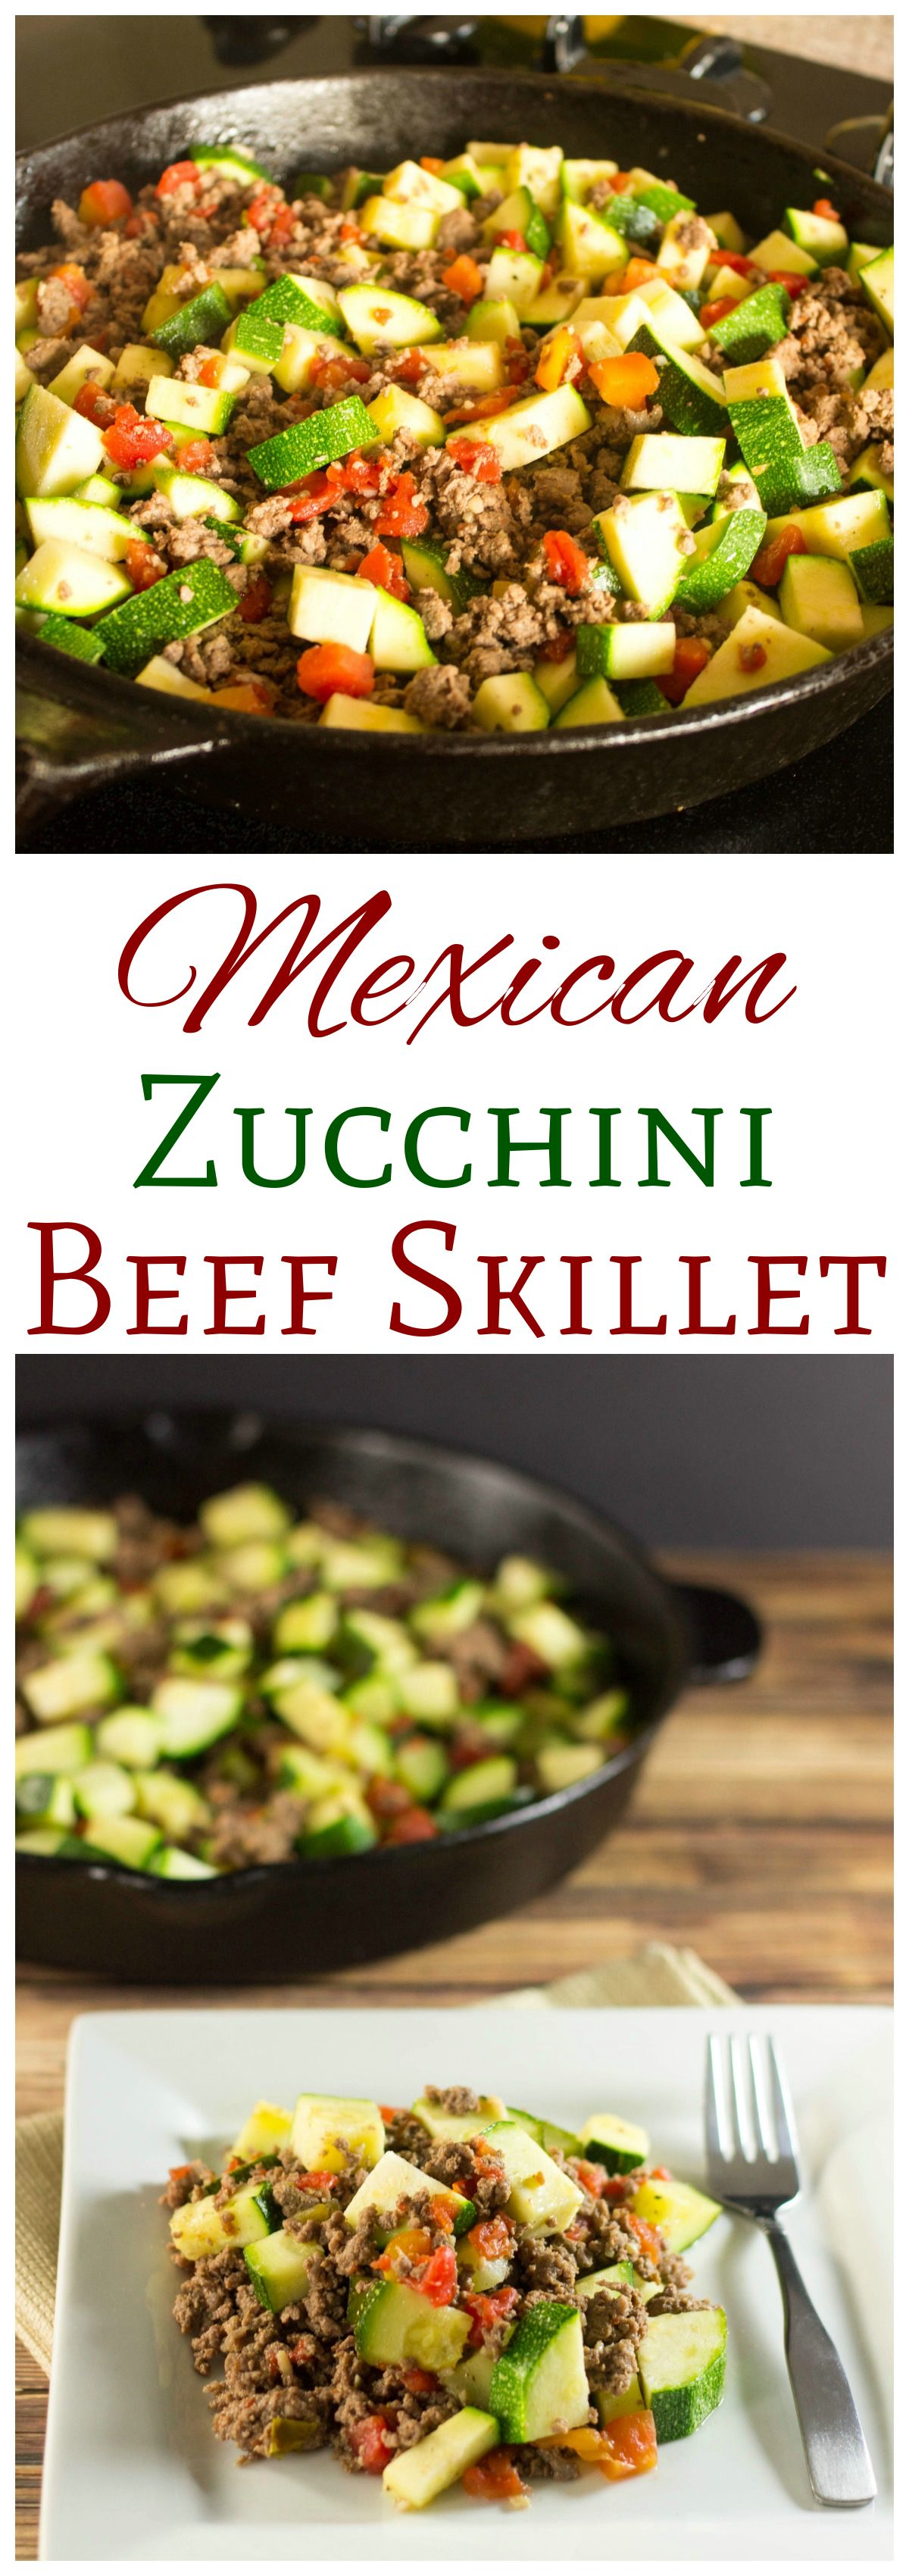 Mexican Zucchini and Beef Skillet | Low Carb Yum